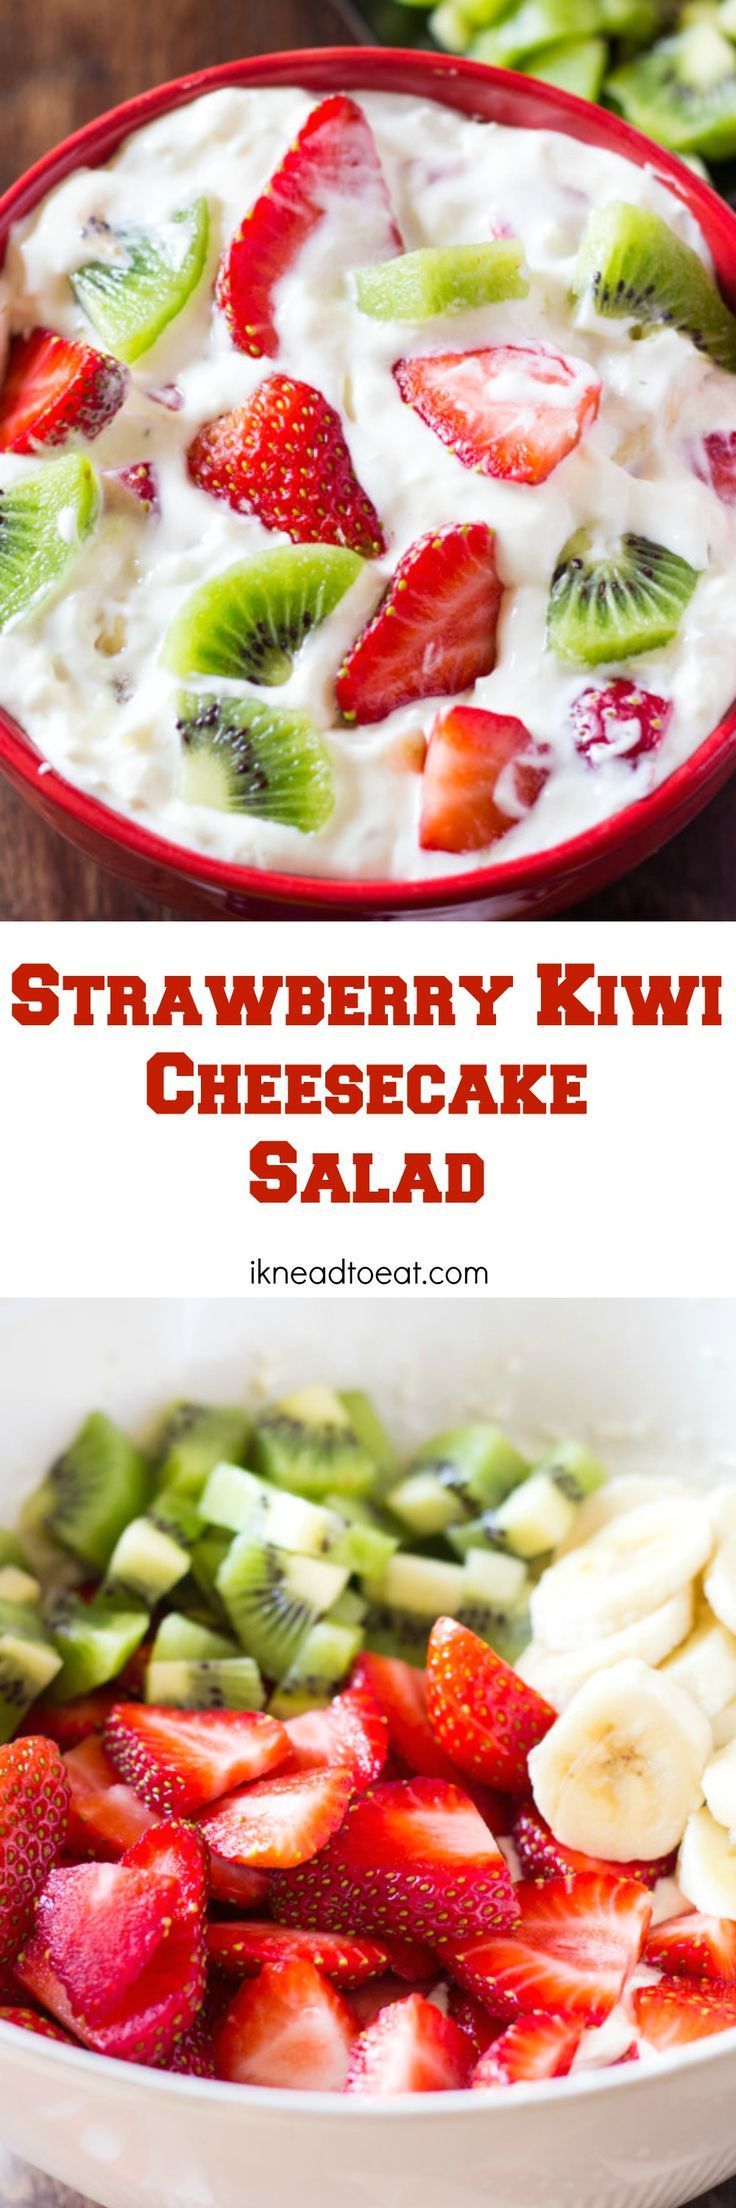 Strawberry Kiwi Cheesecake Salad Recept Mat Och Dryck